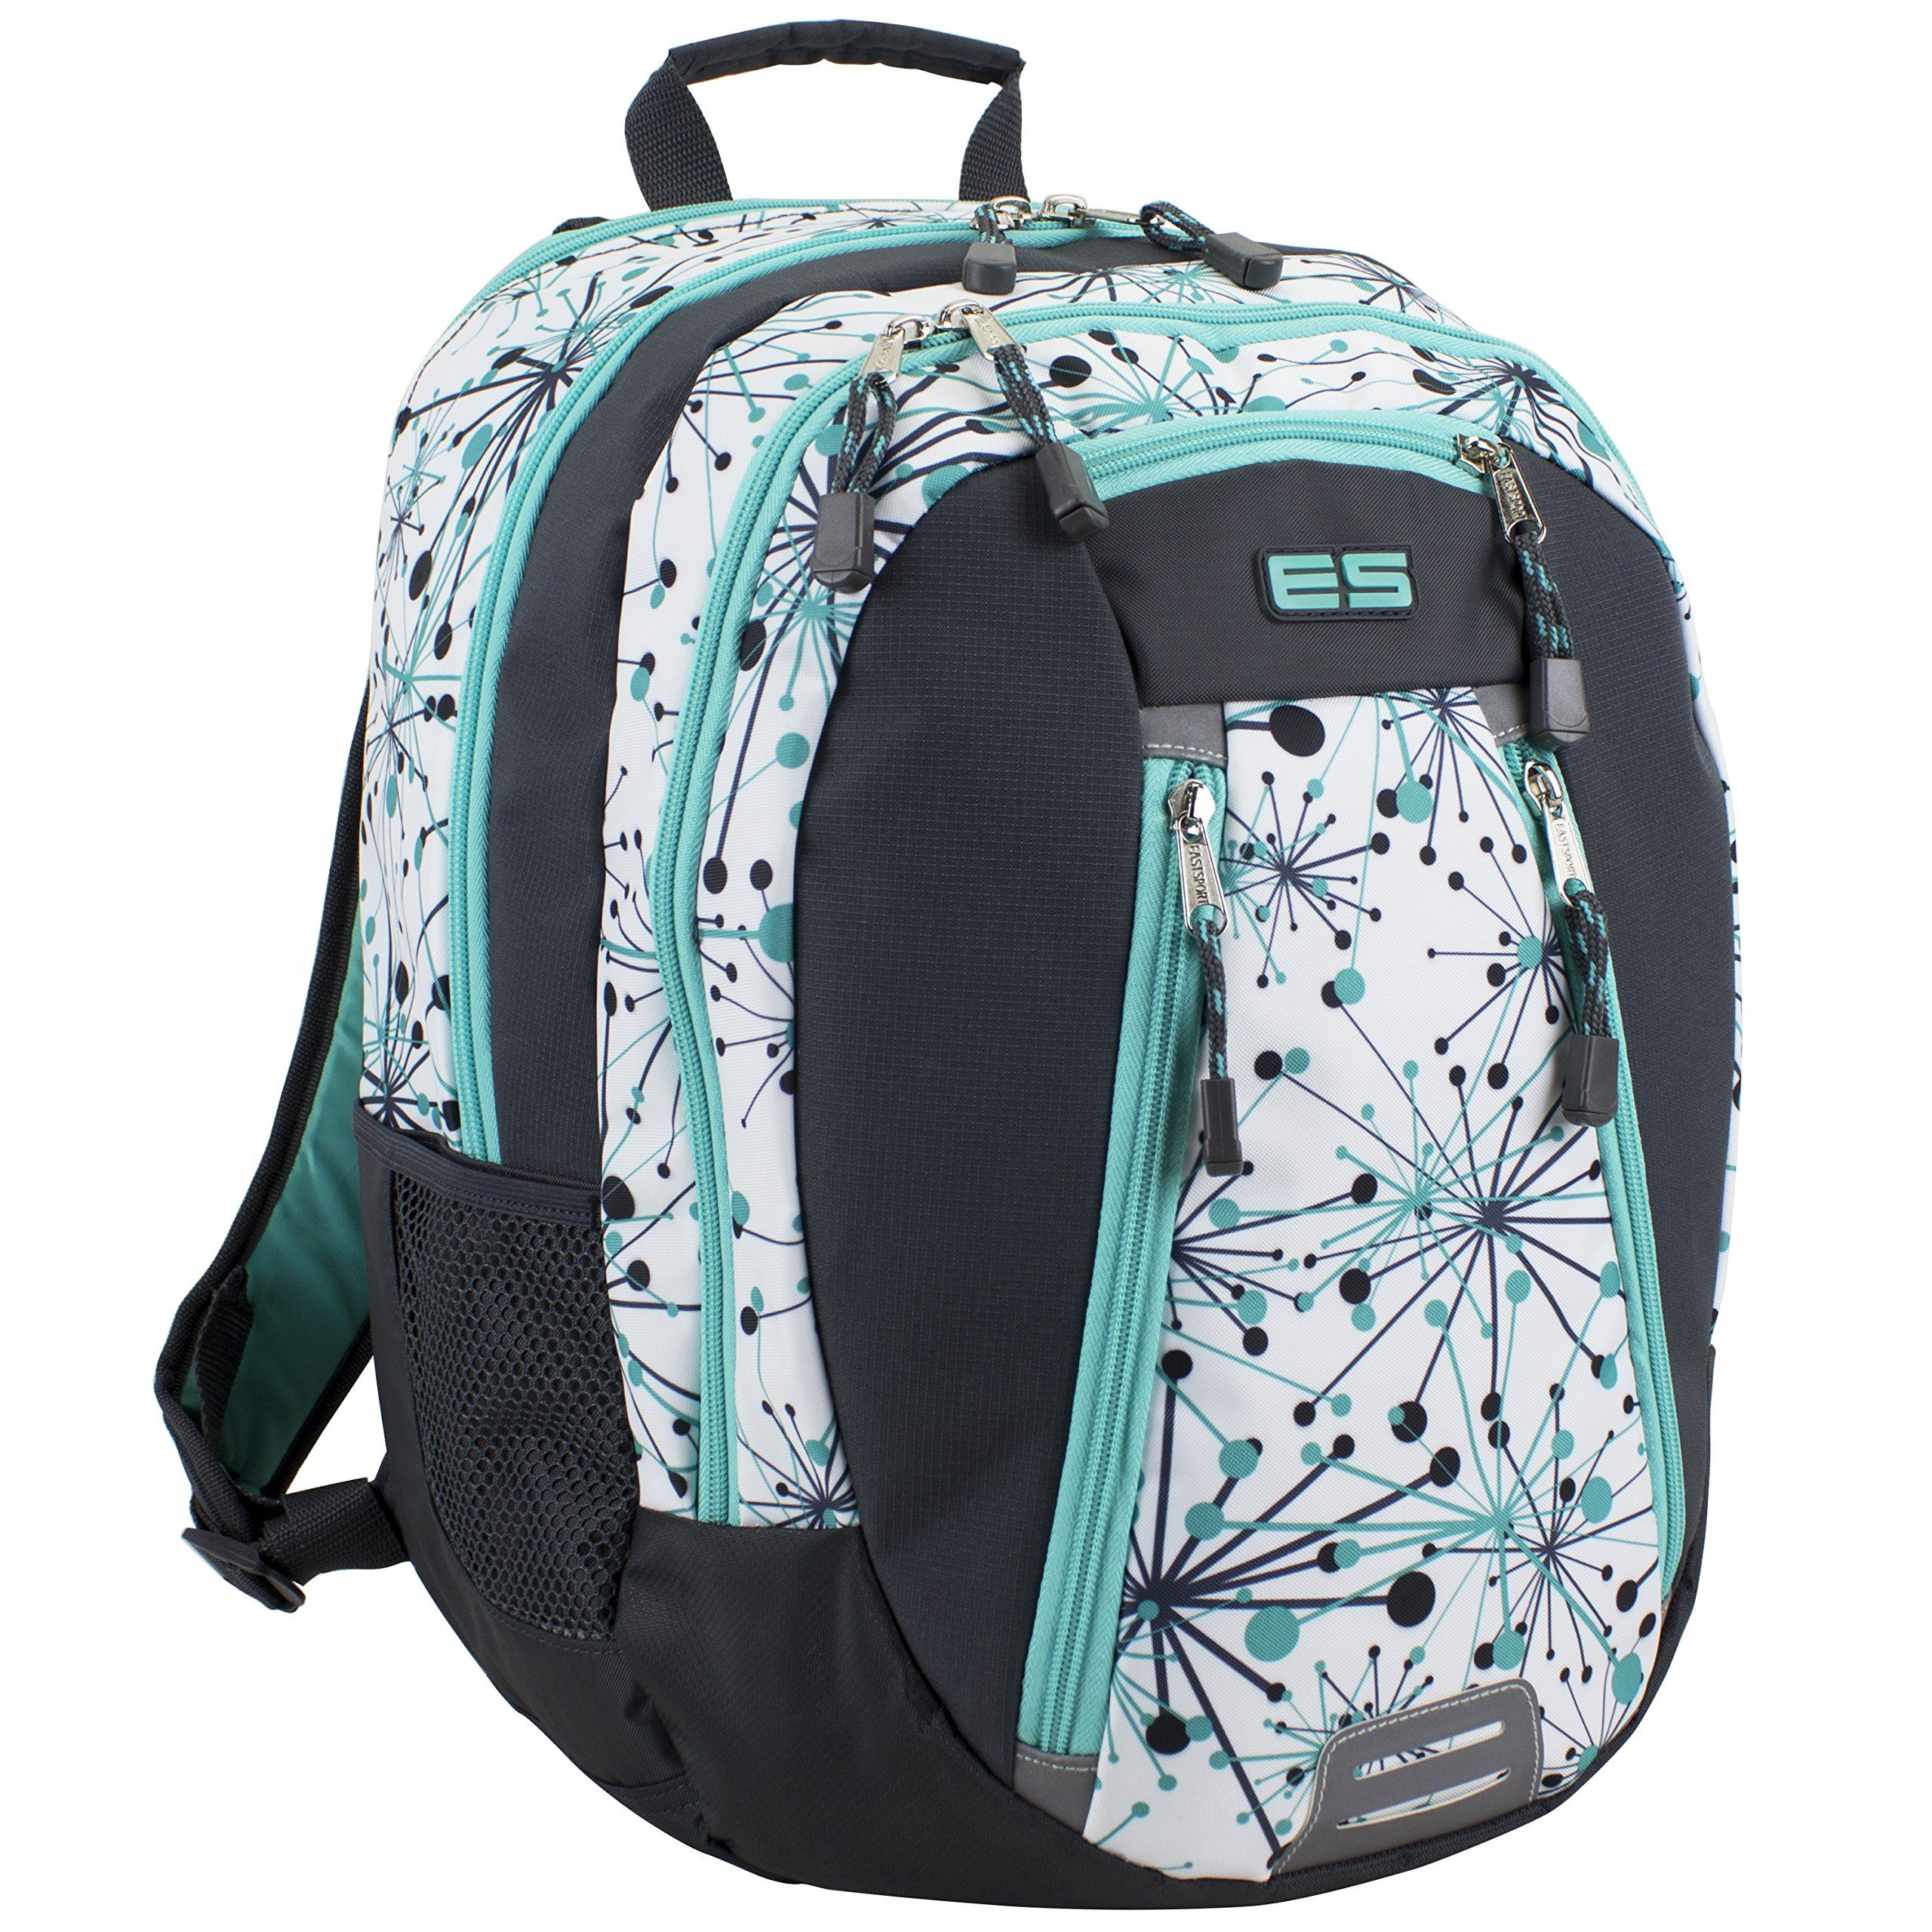 a9a2bd1206 Eastsport Sport Backpack for School